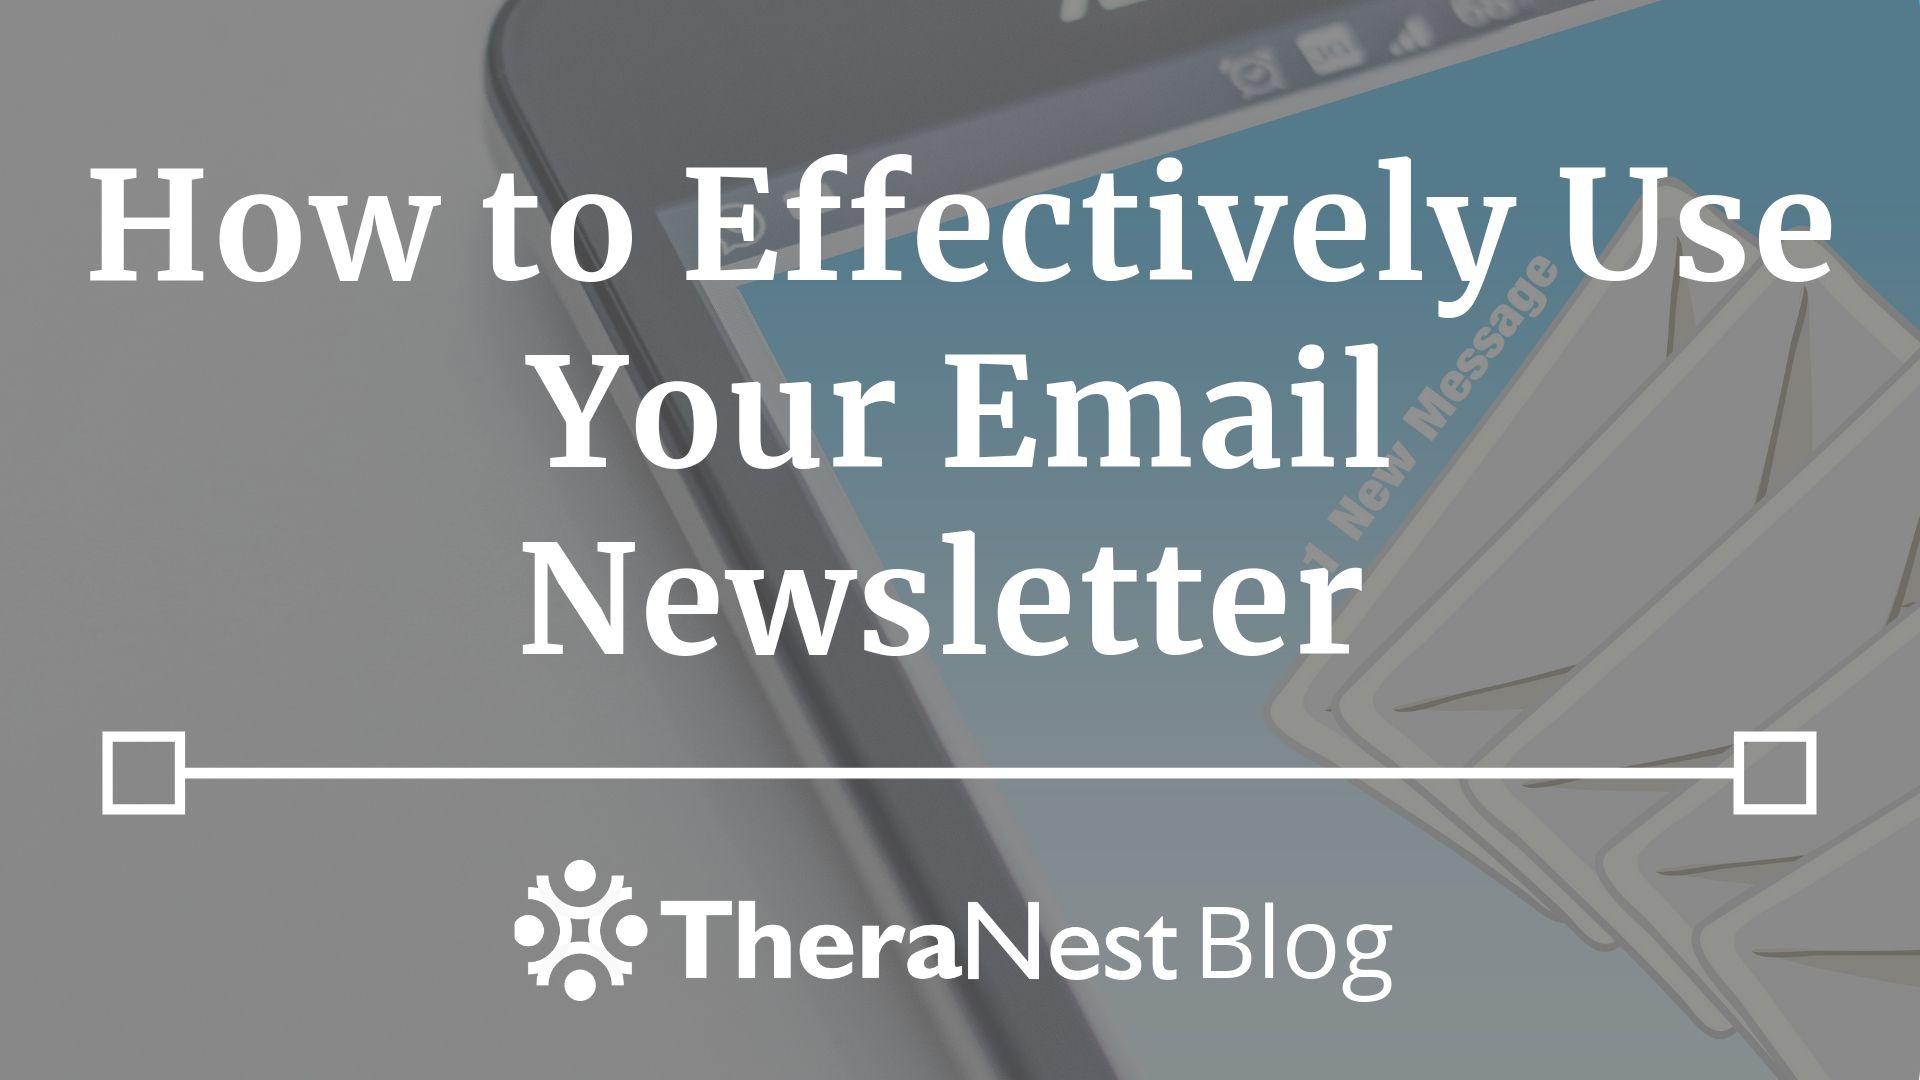 A Therapist's Guide to Email Newsletters